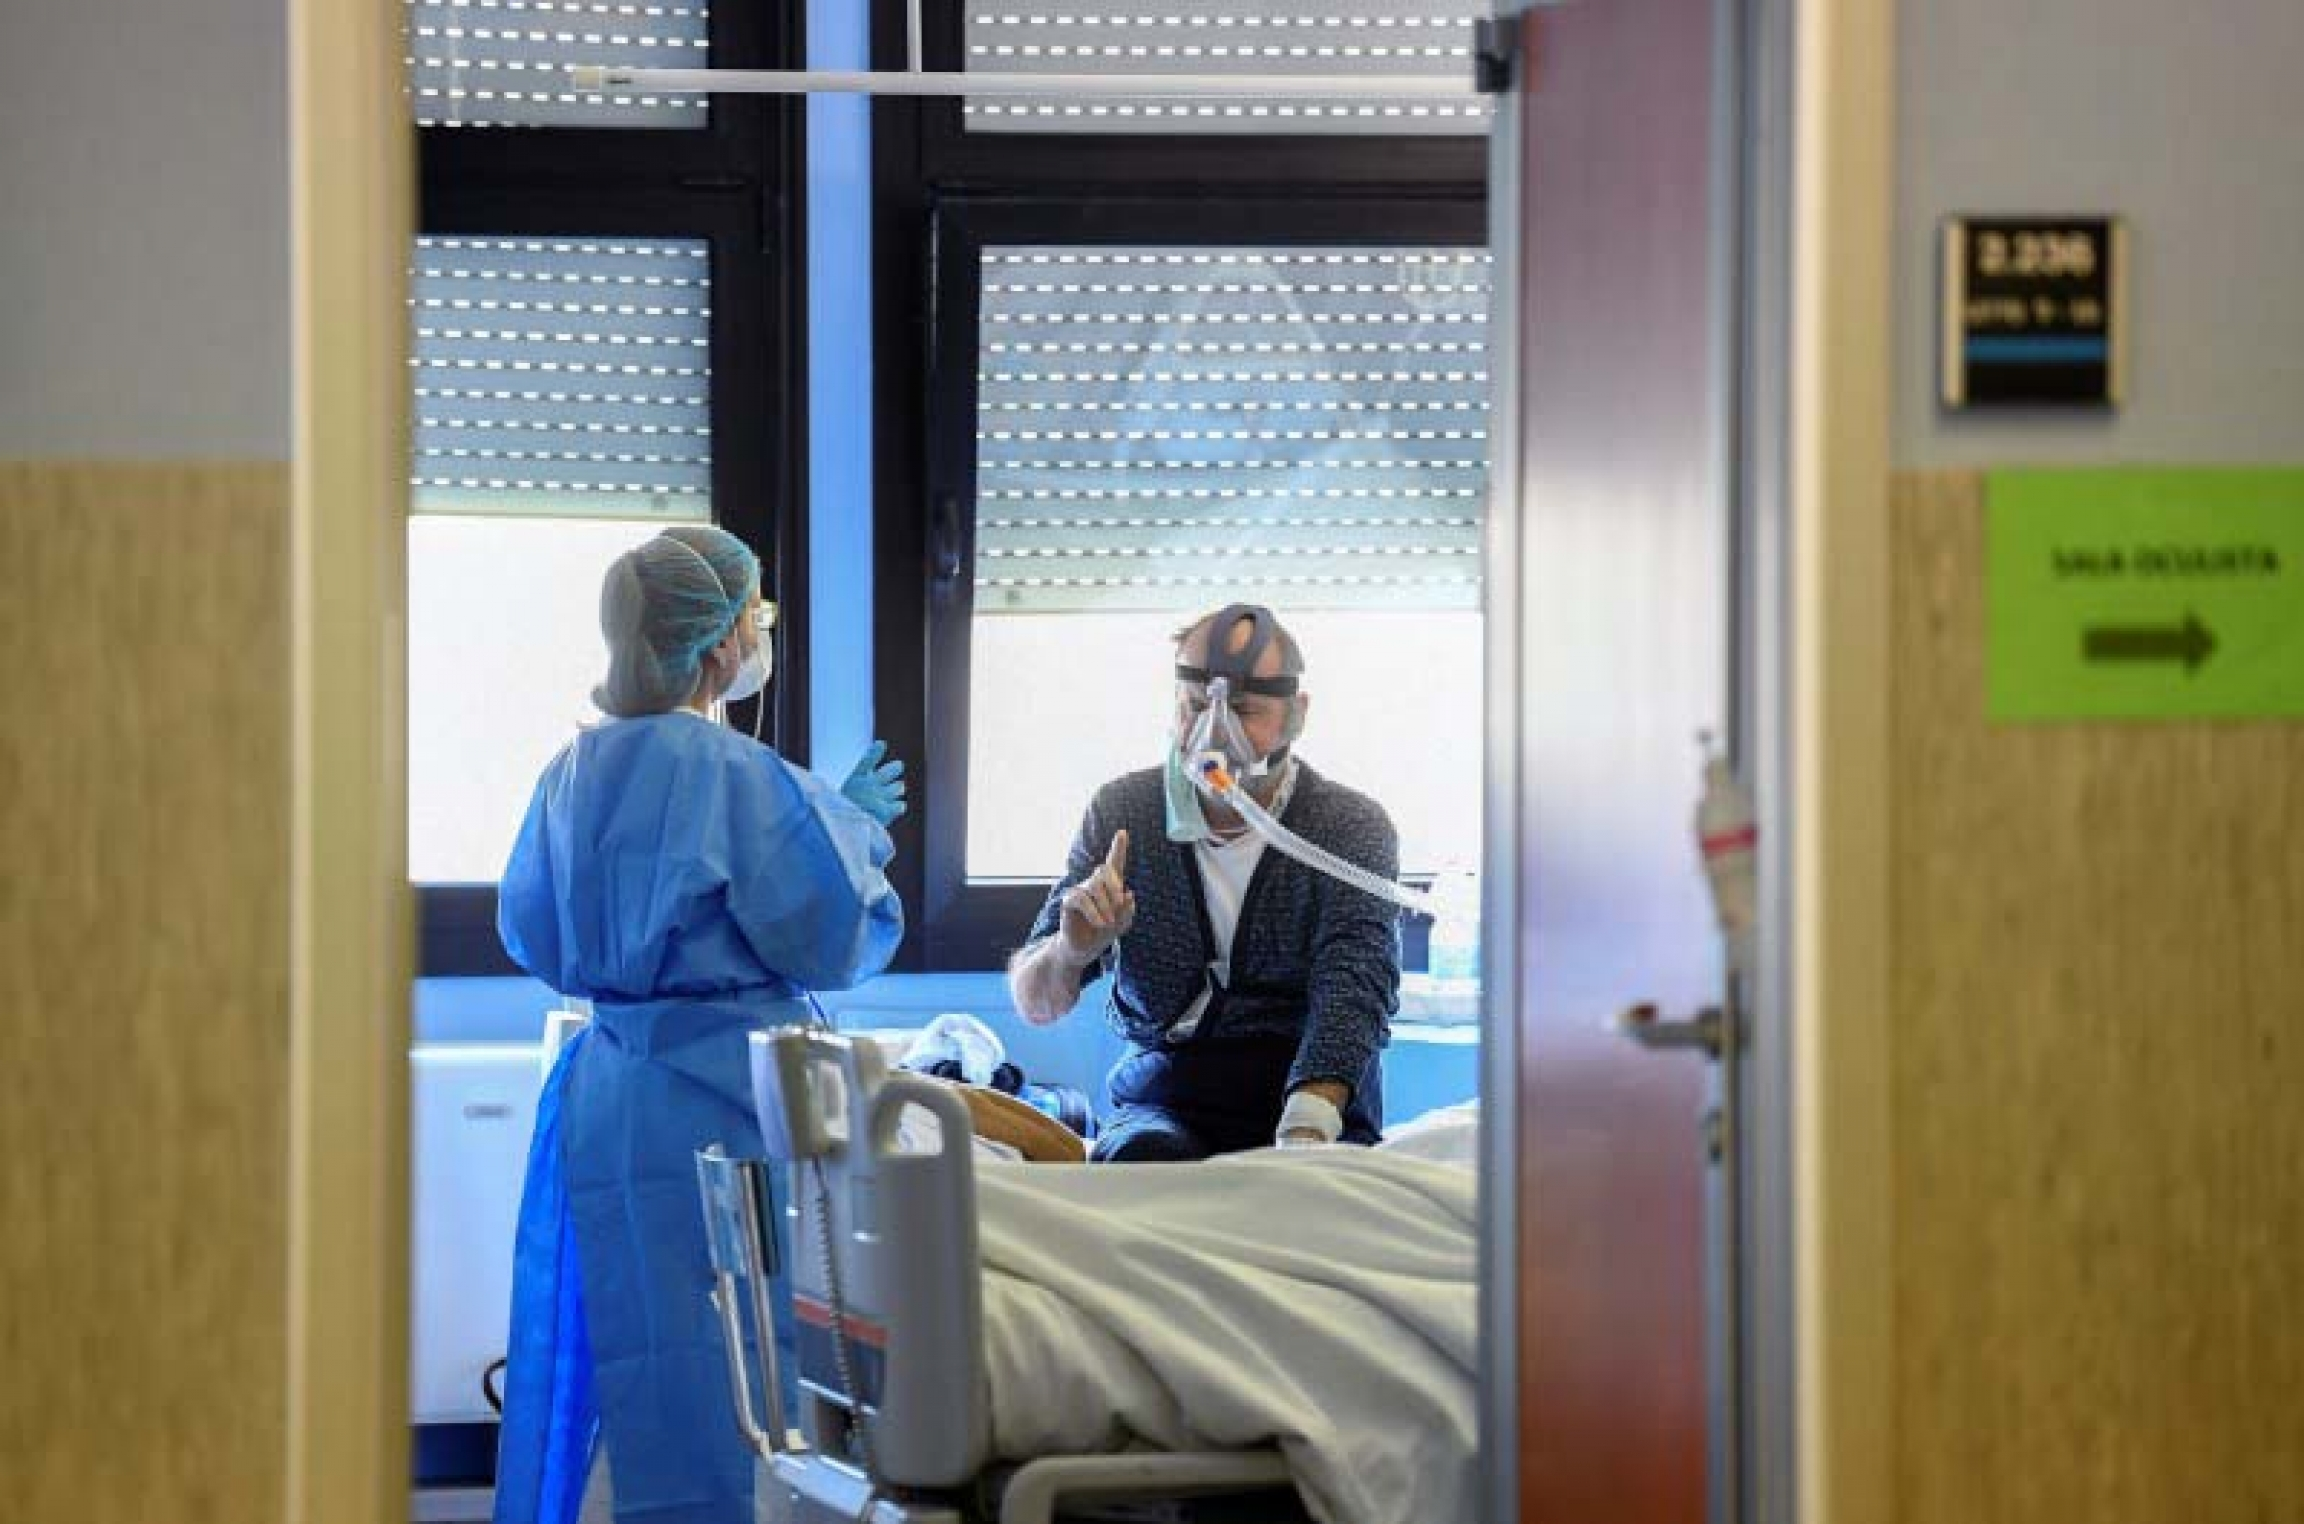 A medical worker wearing a protective mask and suit speaks with a patient suffering from coronavirus disease (COVID-19) in an intensive care unit at the Oglio Po hospital in Cremona, Italy March 19, 2020.